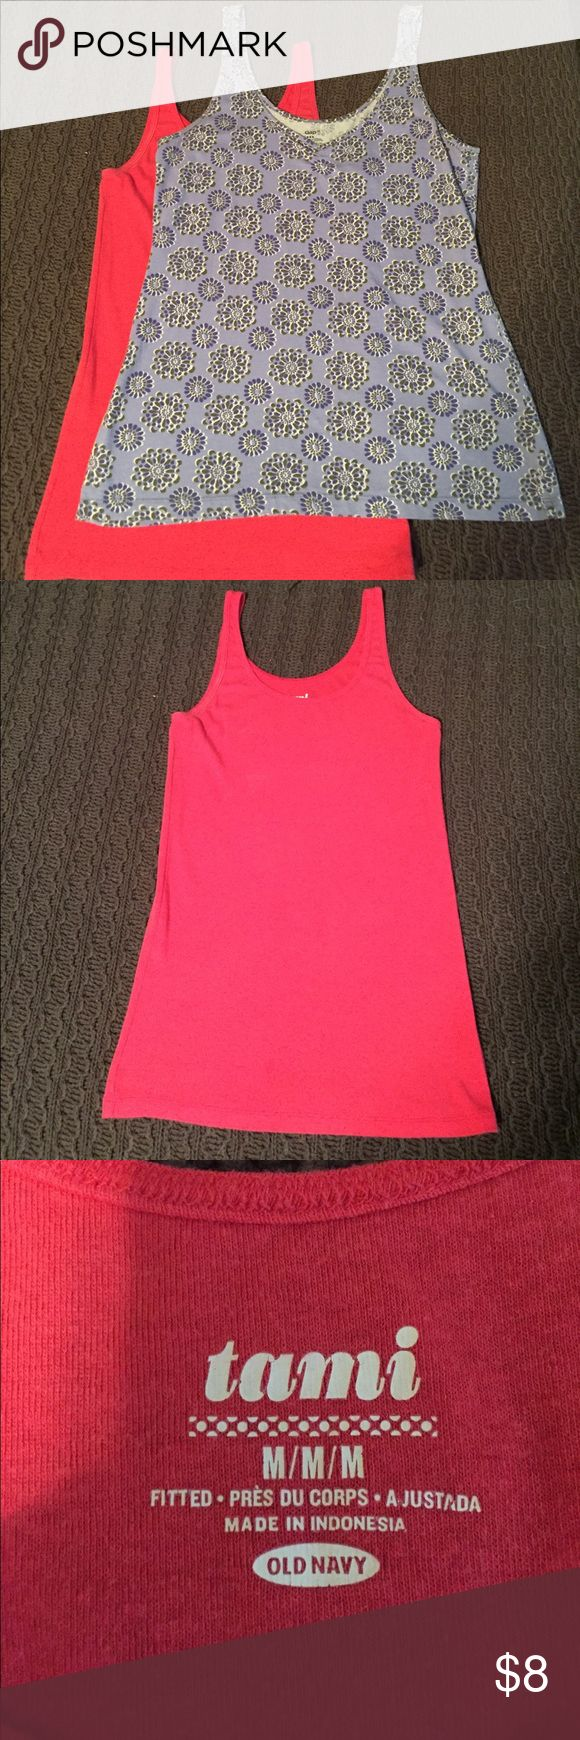 Tank Top Bundle! Two for One! Hot pink Old Navy tank top AND floral purple Gap tank top! Good used condition on both Tops Tank Tops